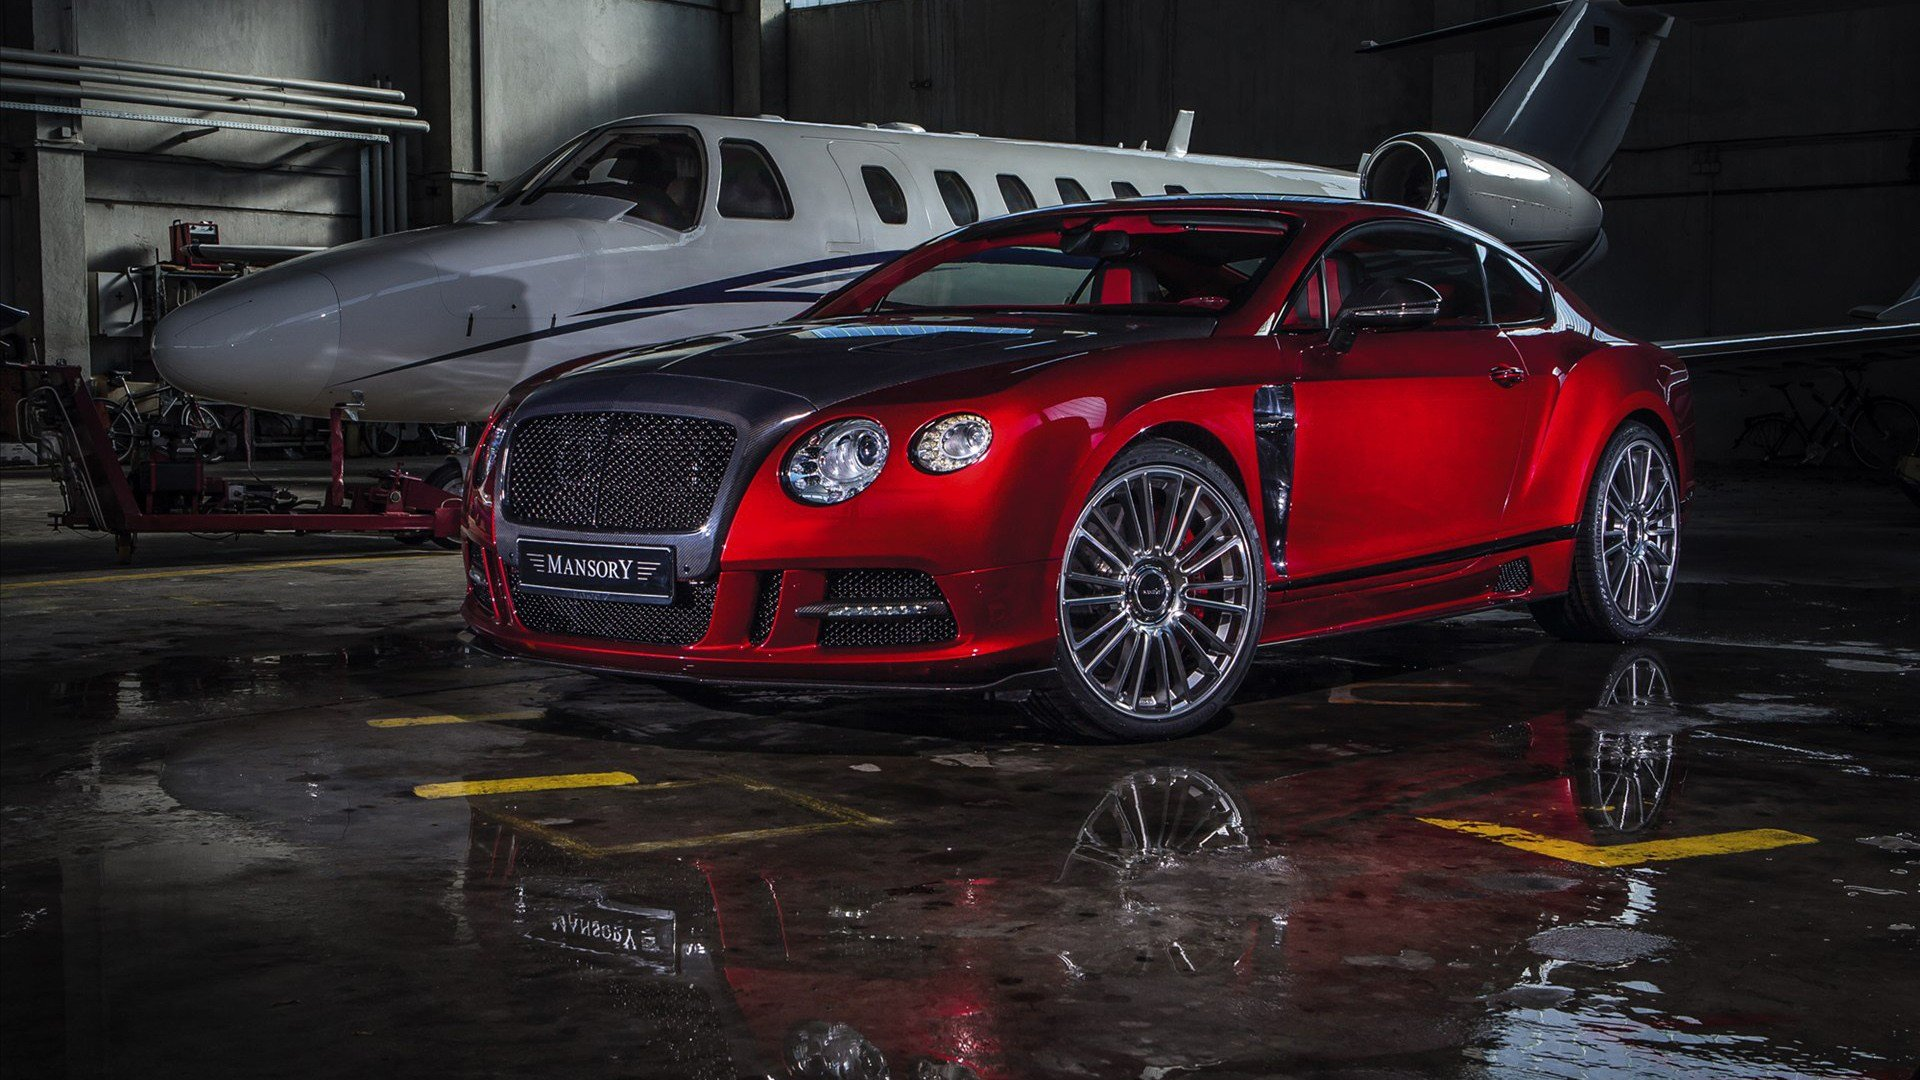 Latest 2013 Mansory Sanguis Bentley Continental Gt Wallpaper Hd Free Download